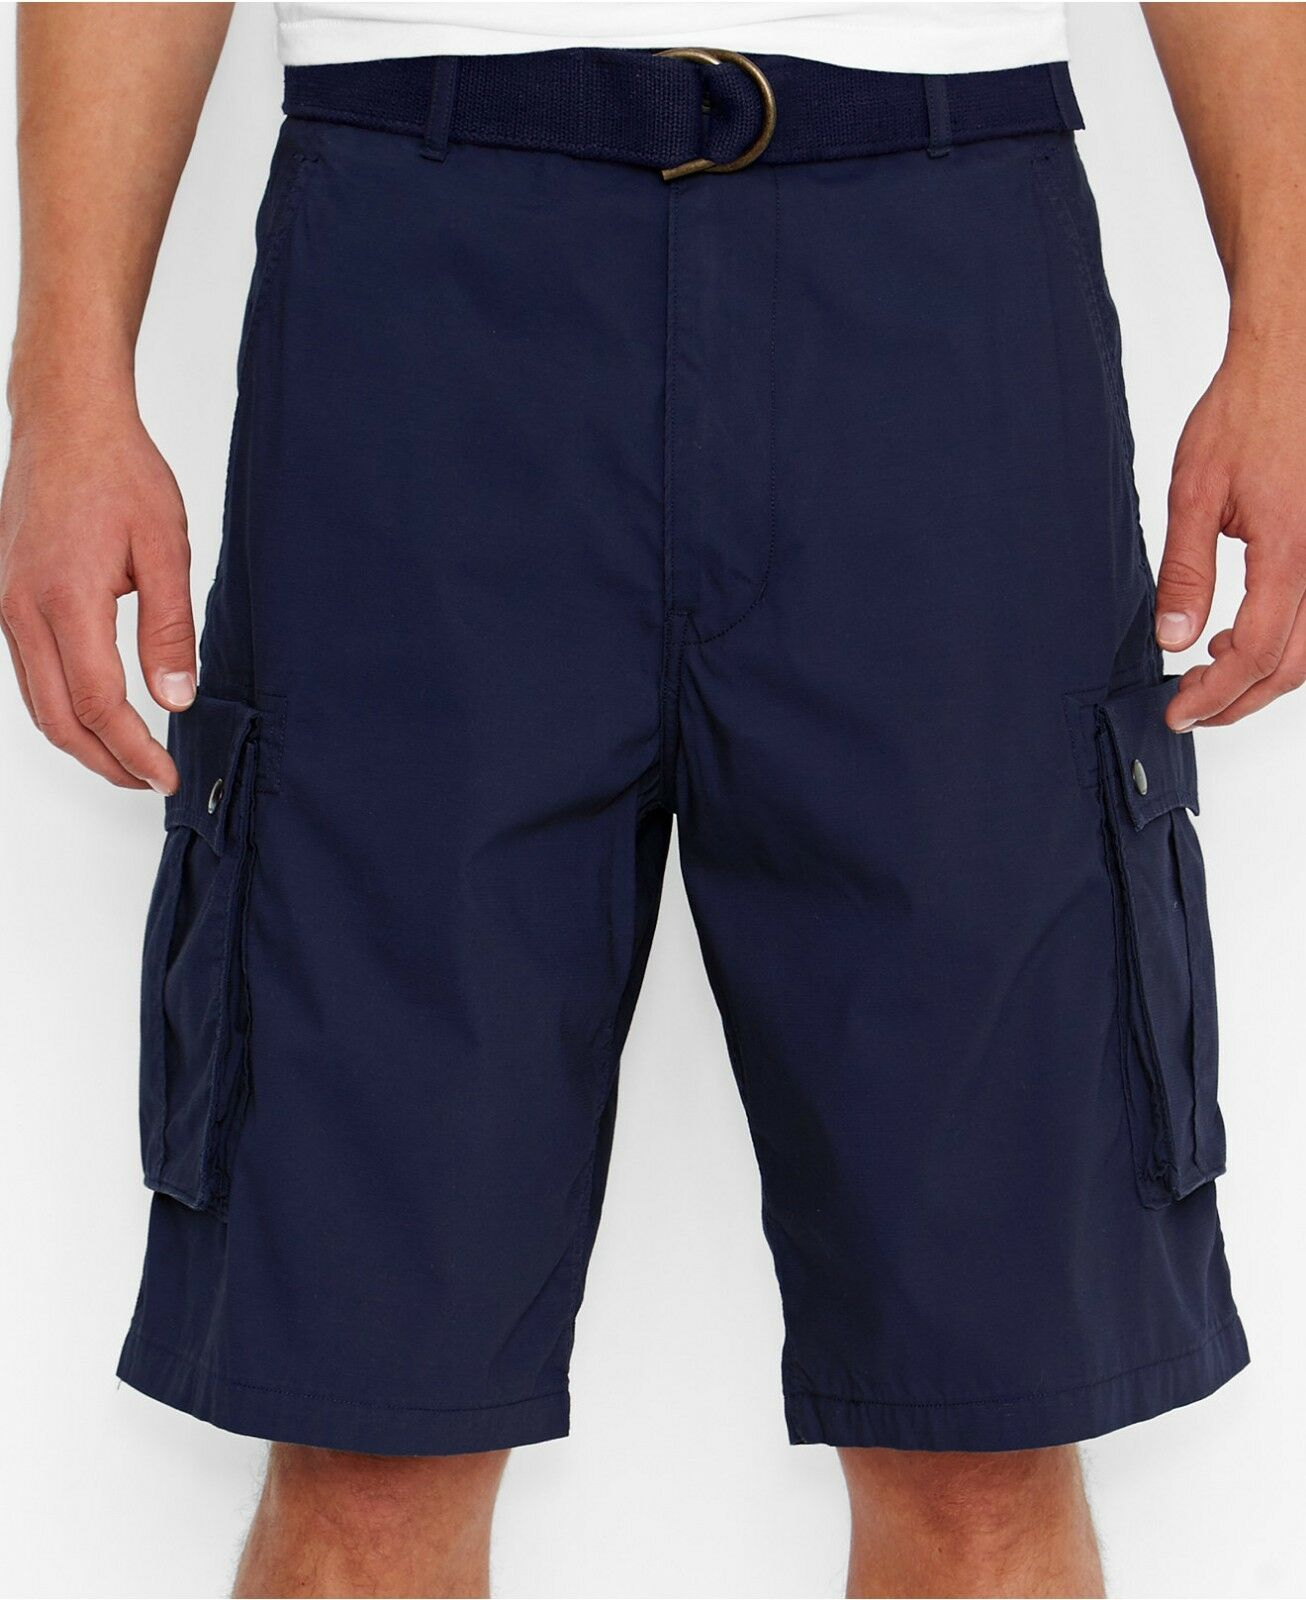 NWT Men's Levi's Snap Belted Cargo Shorts Carrier Ace Squad All Sizes Dress Blue